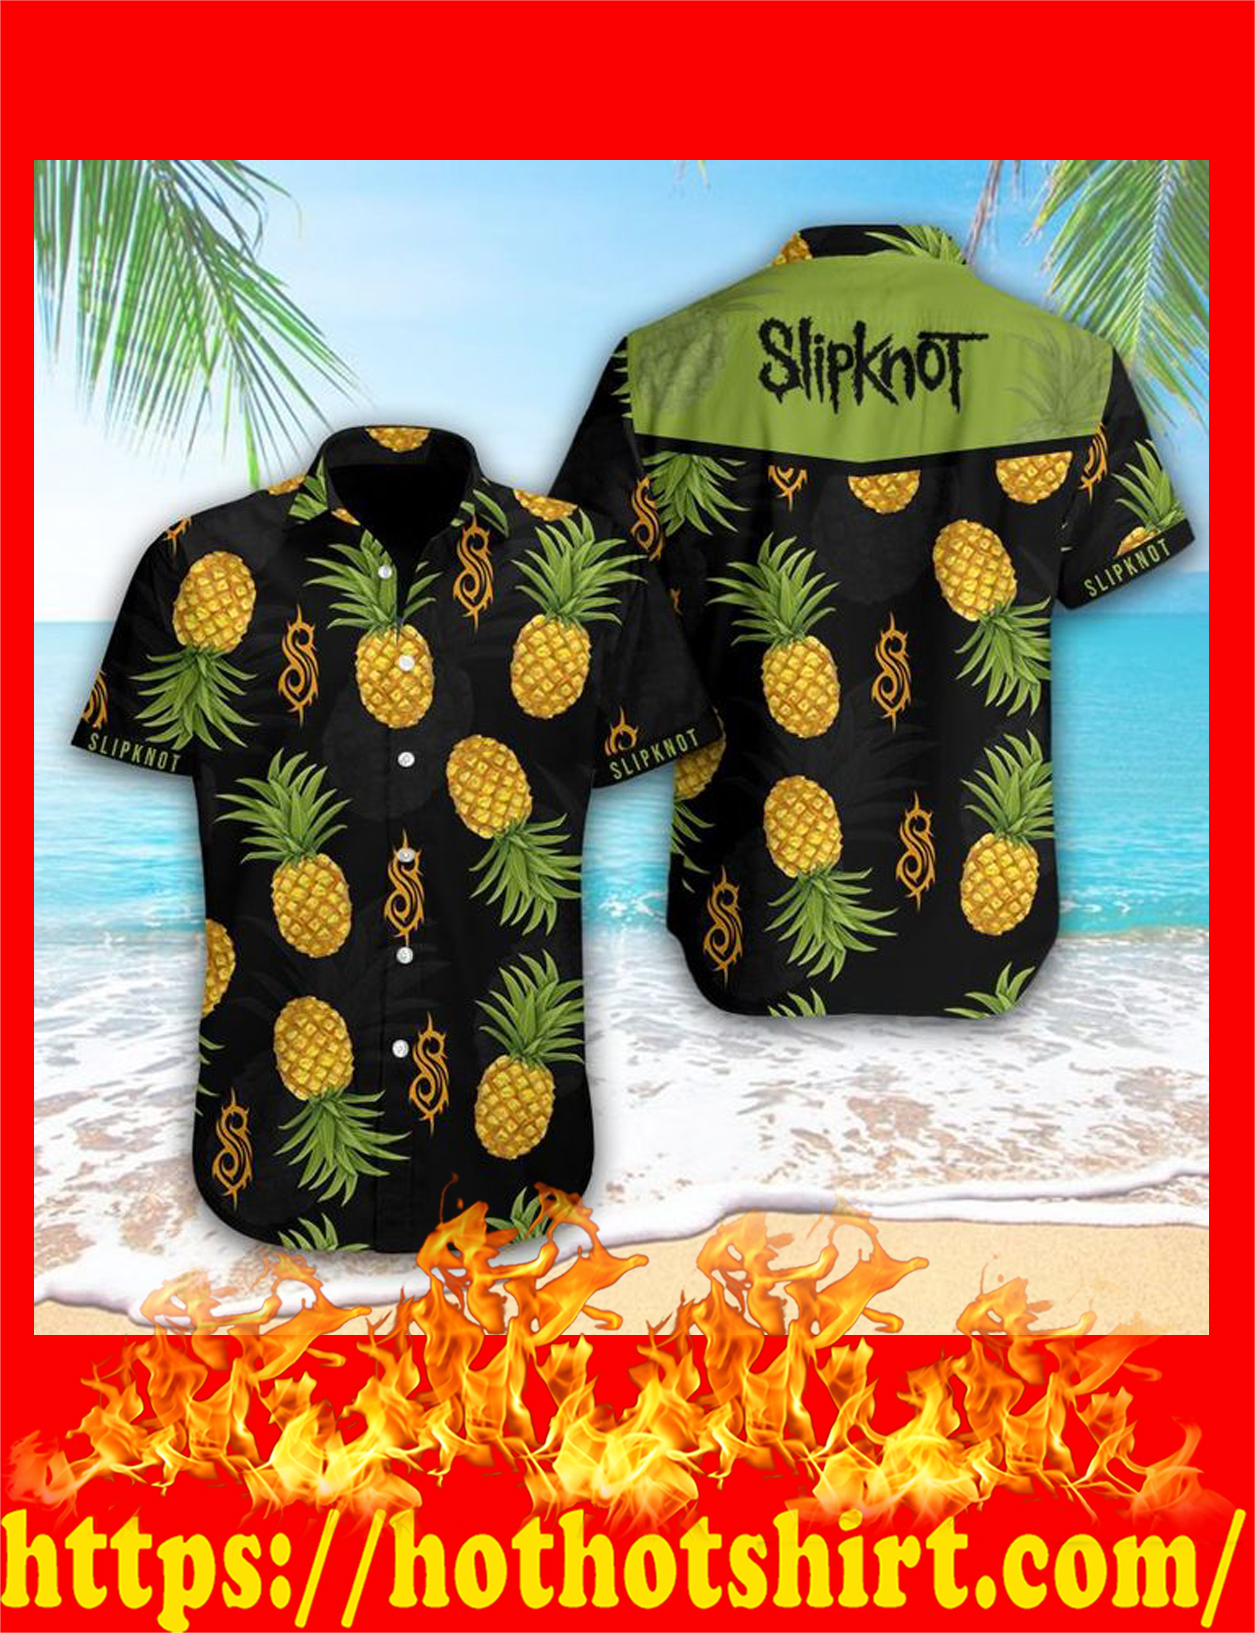 Slipknot pineapple hawaiian shirt - detail